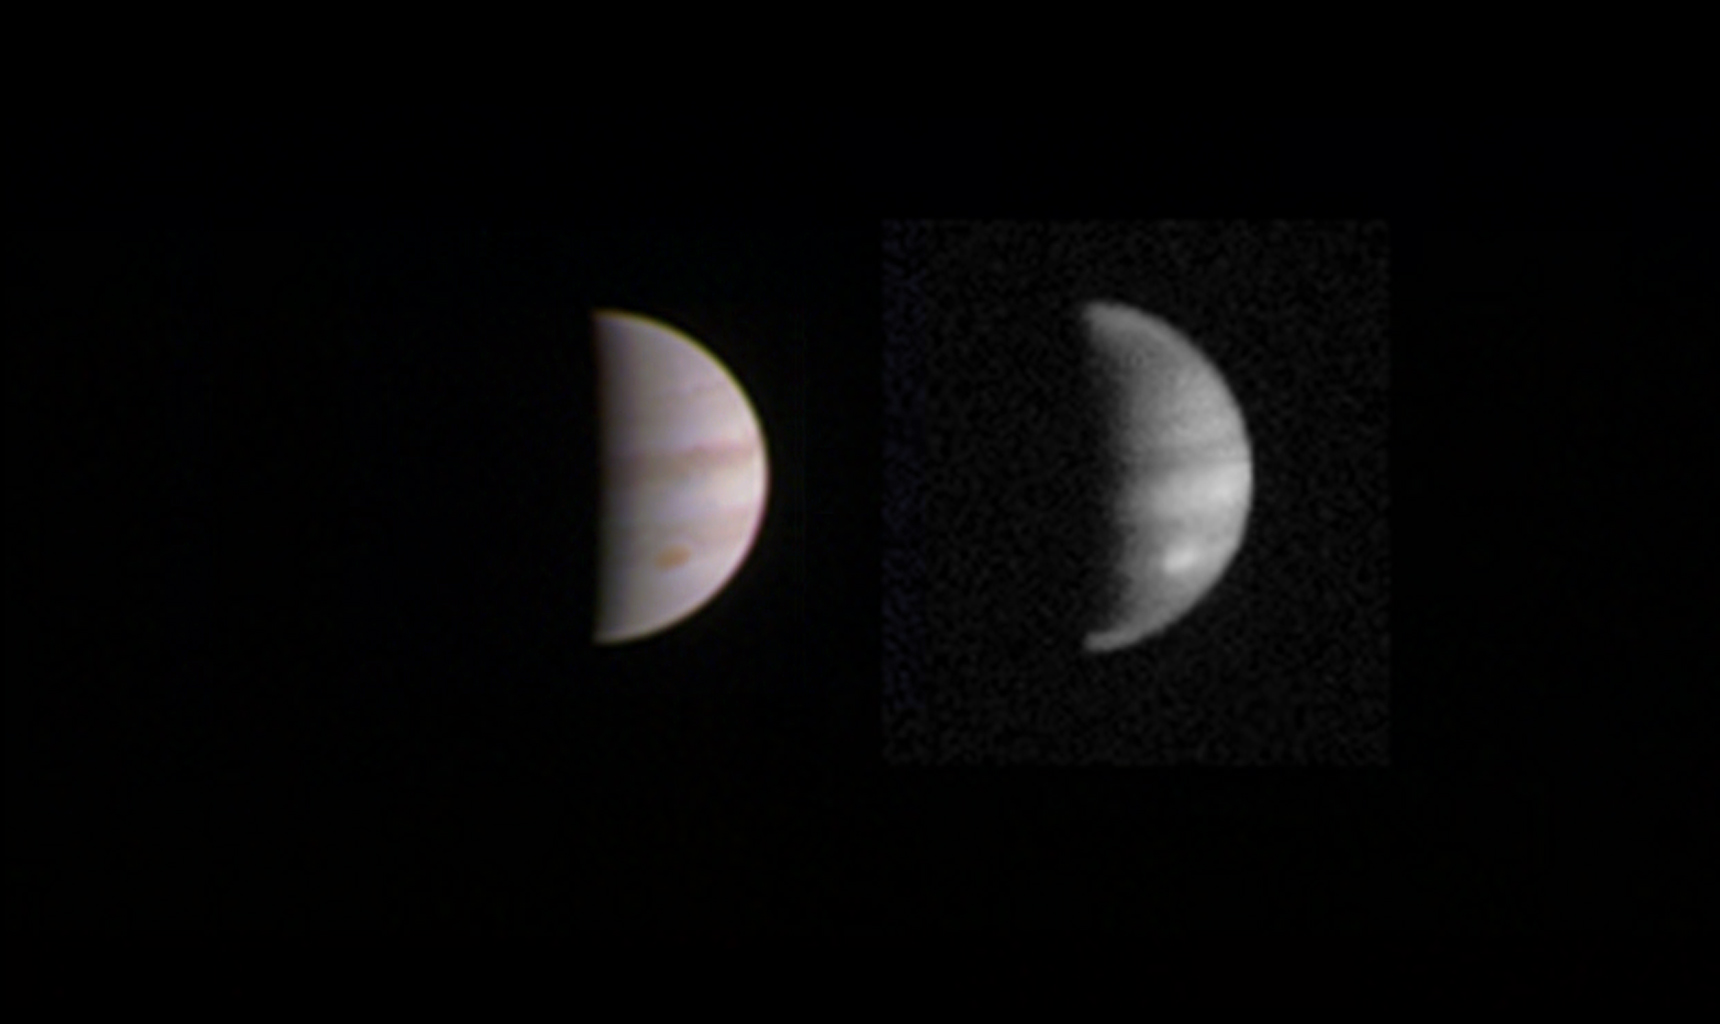 Juno soars closest to Jupiter August 27